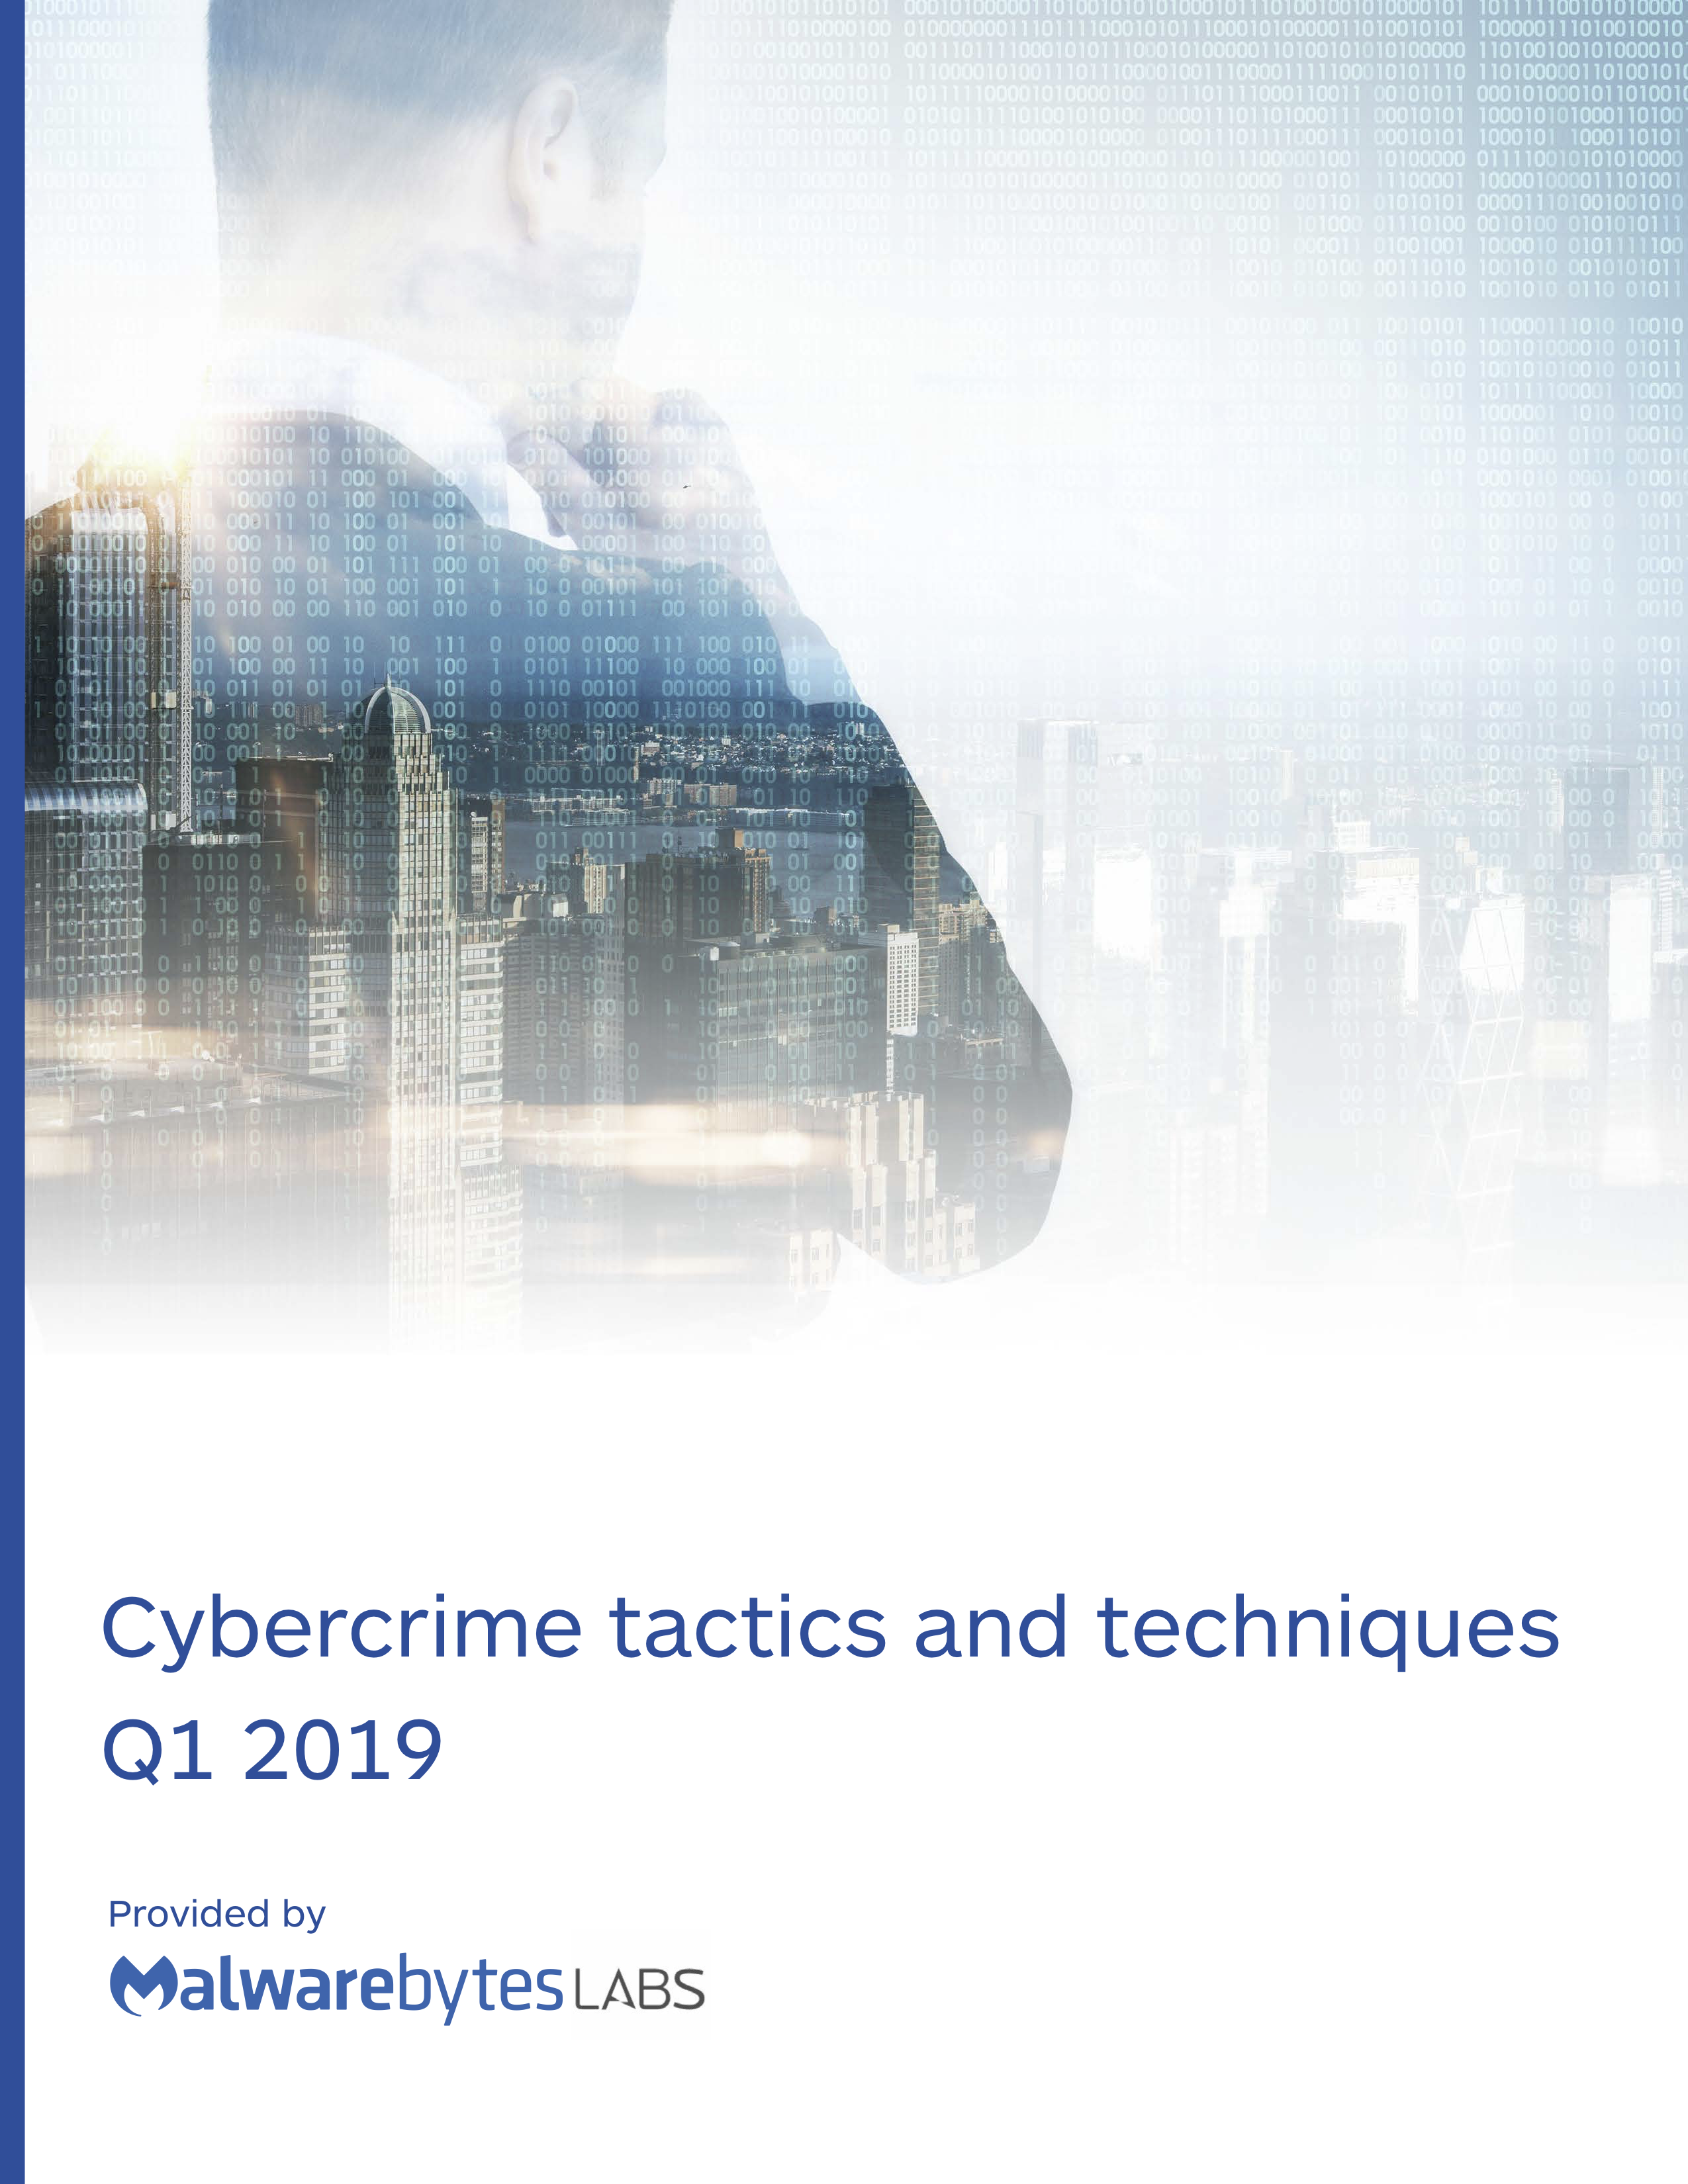 Square cropped mwb ctnt 2019 state of malware final cover 54eac3e7b6d73259